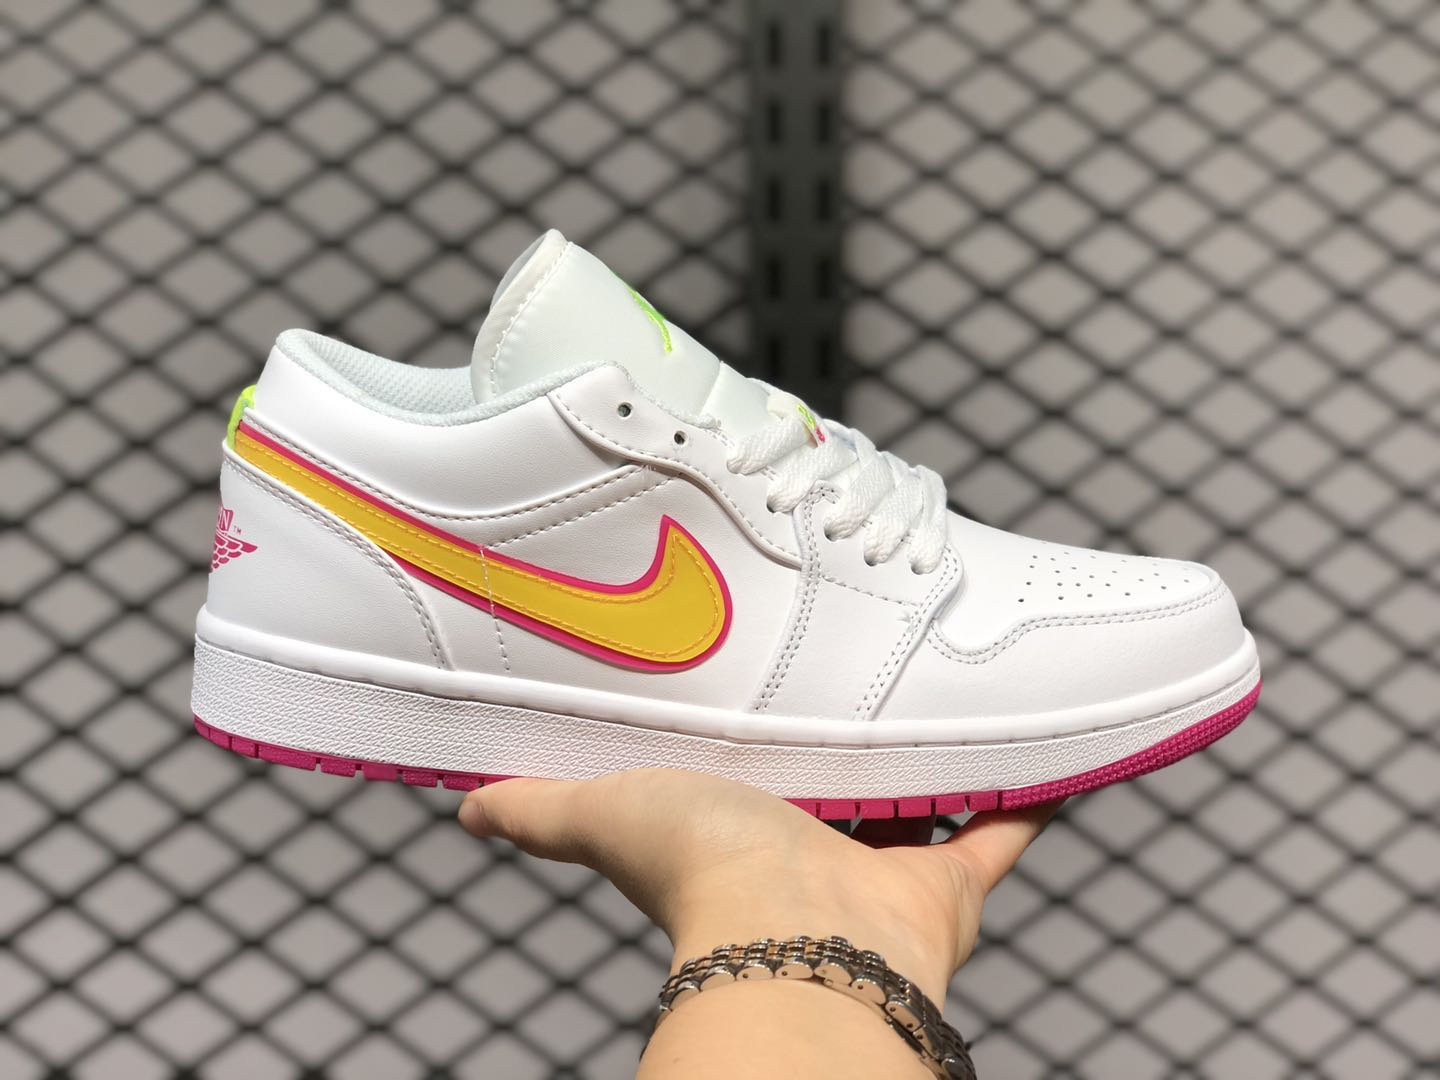 Air Jordan 1 Low GS White-Pink-Yellow Shoes Outlet Online CU4610-100